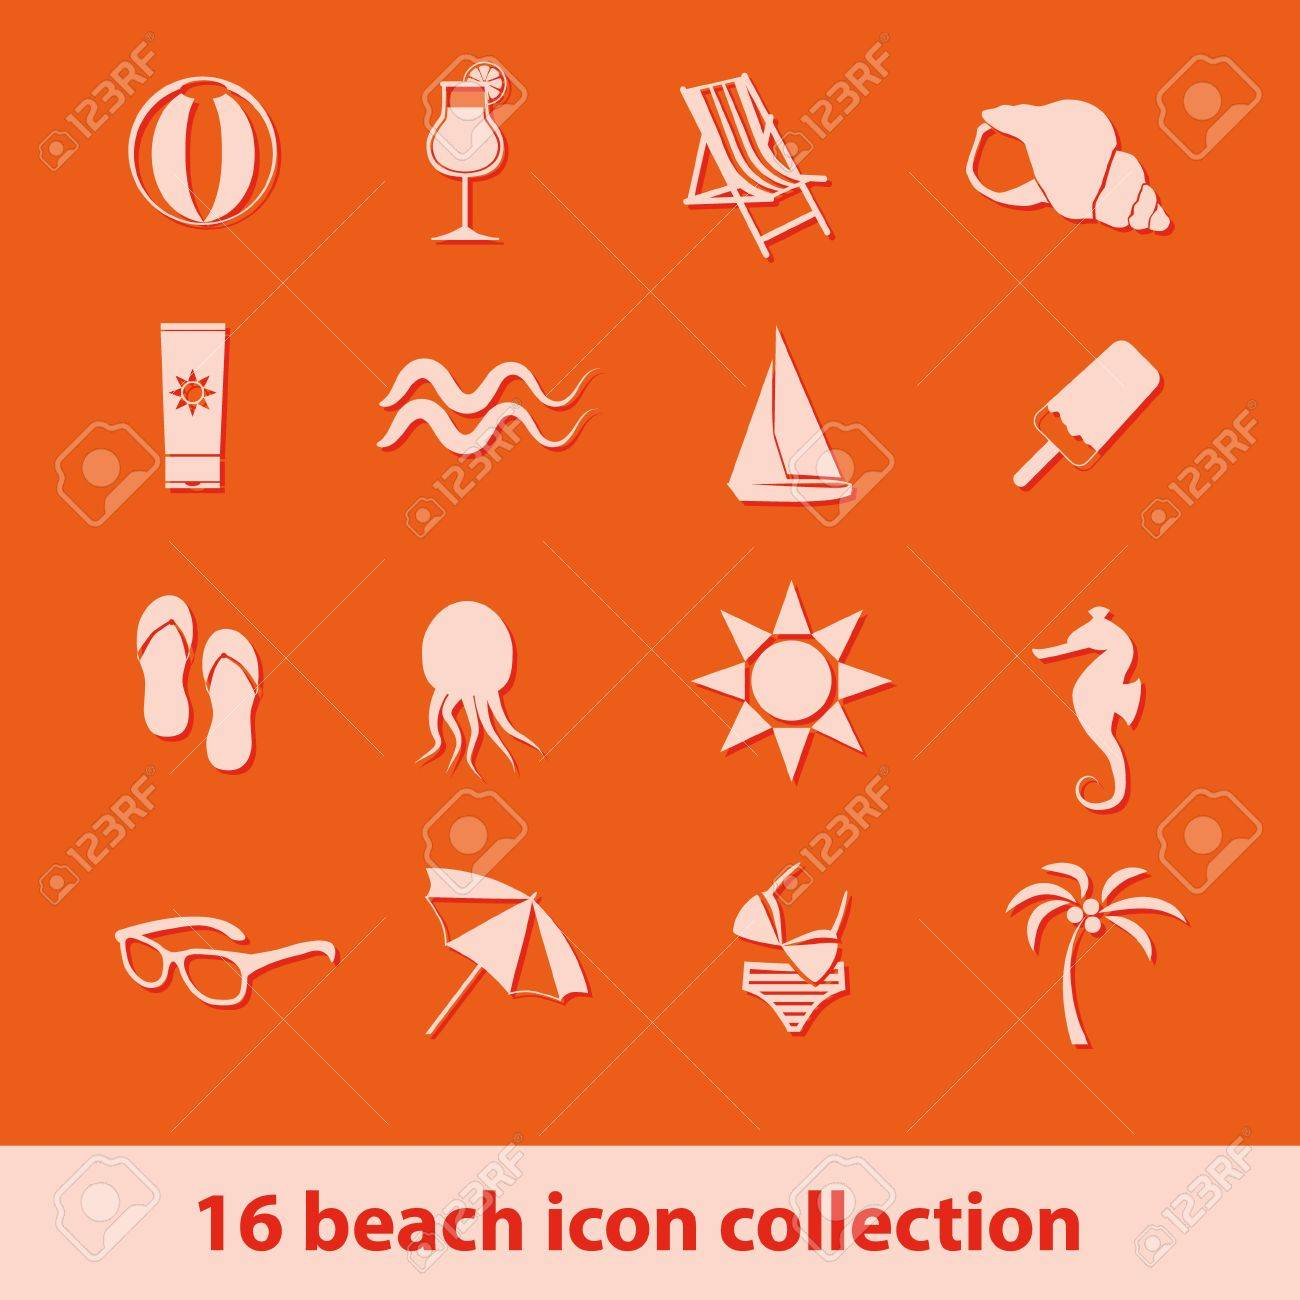 set of 16 beach icon collection Stock Vector - 14408455